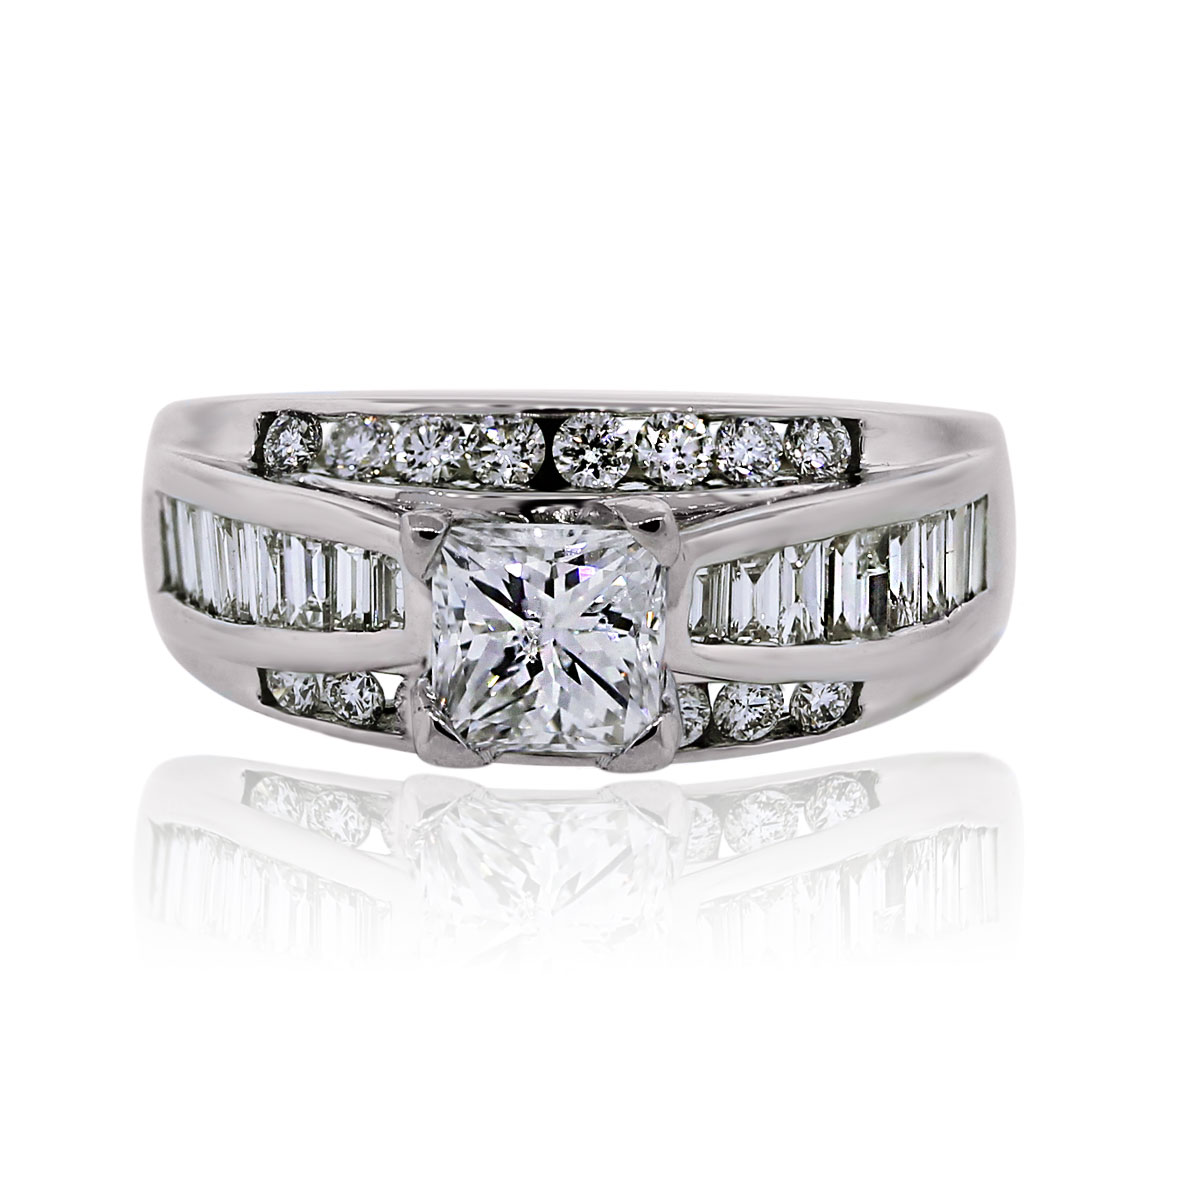 You are viewing this 14k White Gold Princess Cut 0.95ct Diamond Engagement Ring!